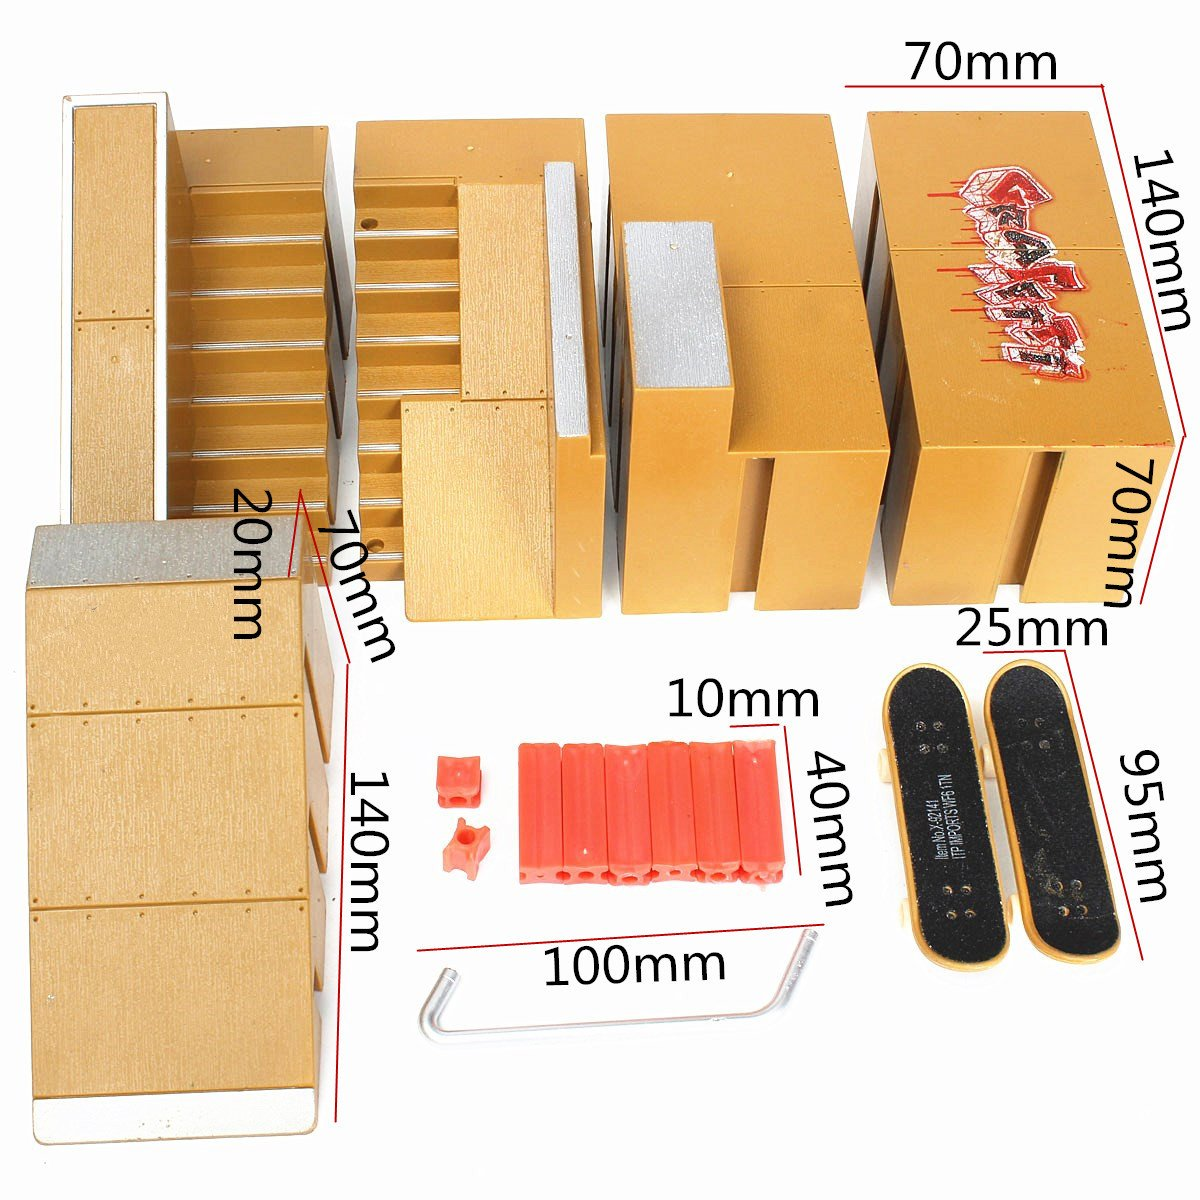 Amazon.com: Piezas de skate park Ramp para Tech Deck ...